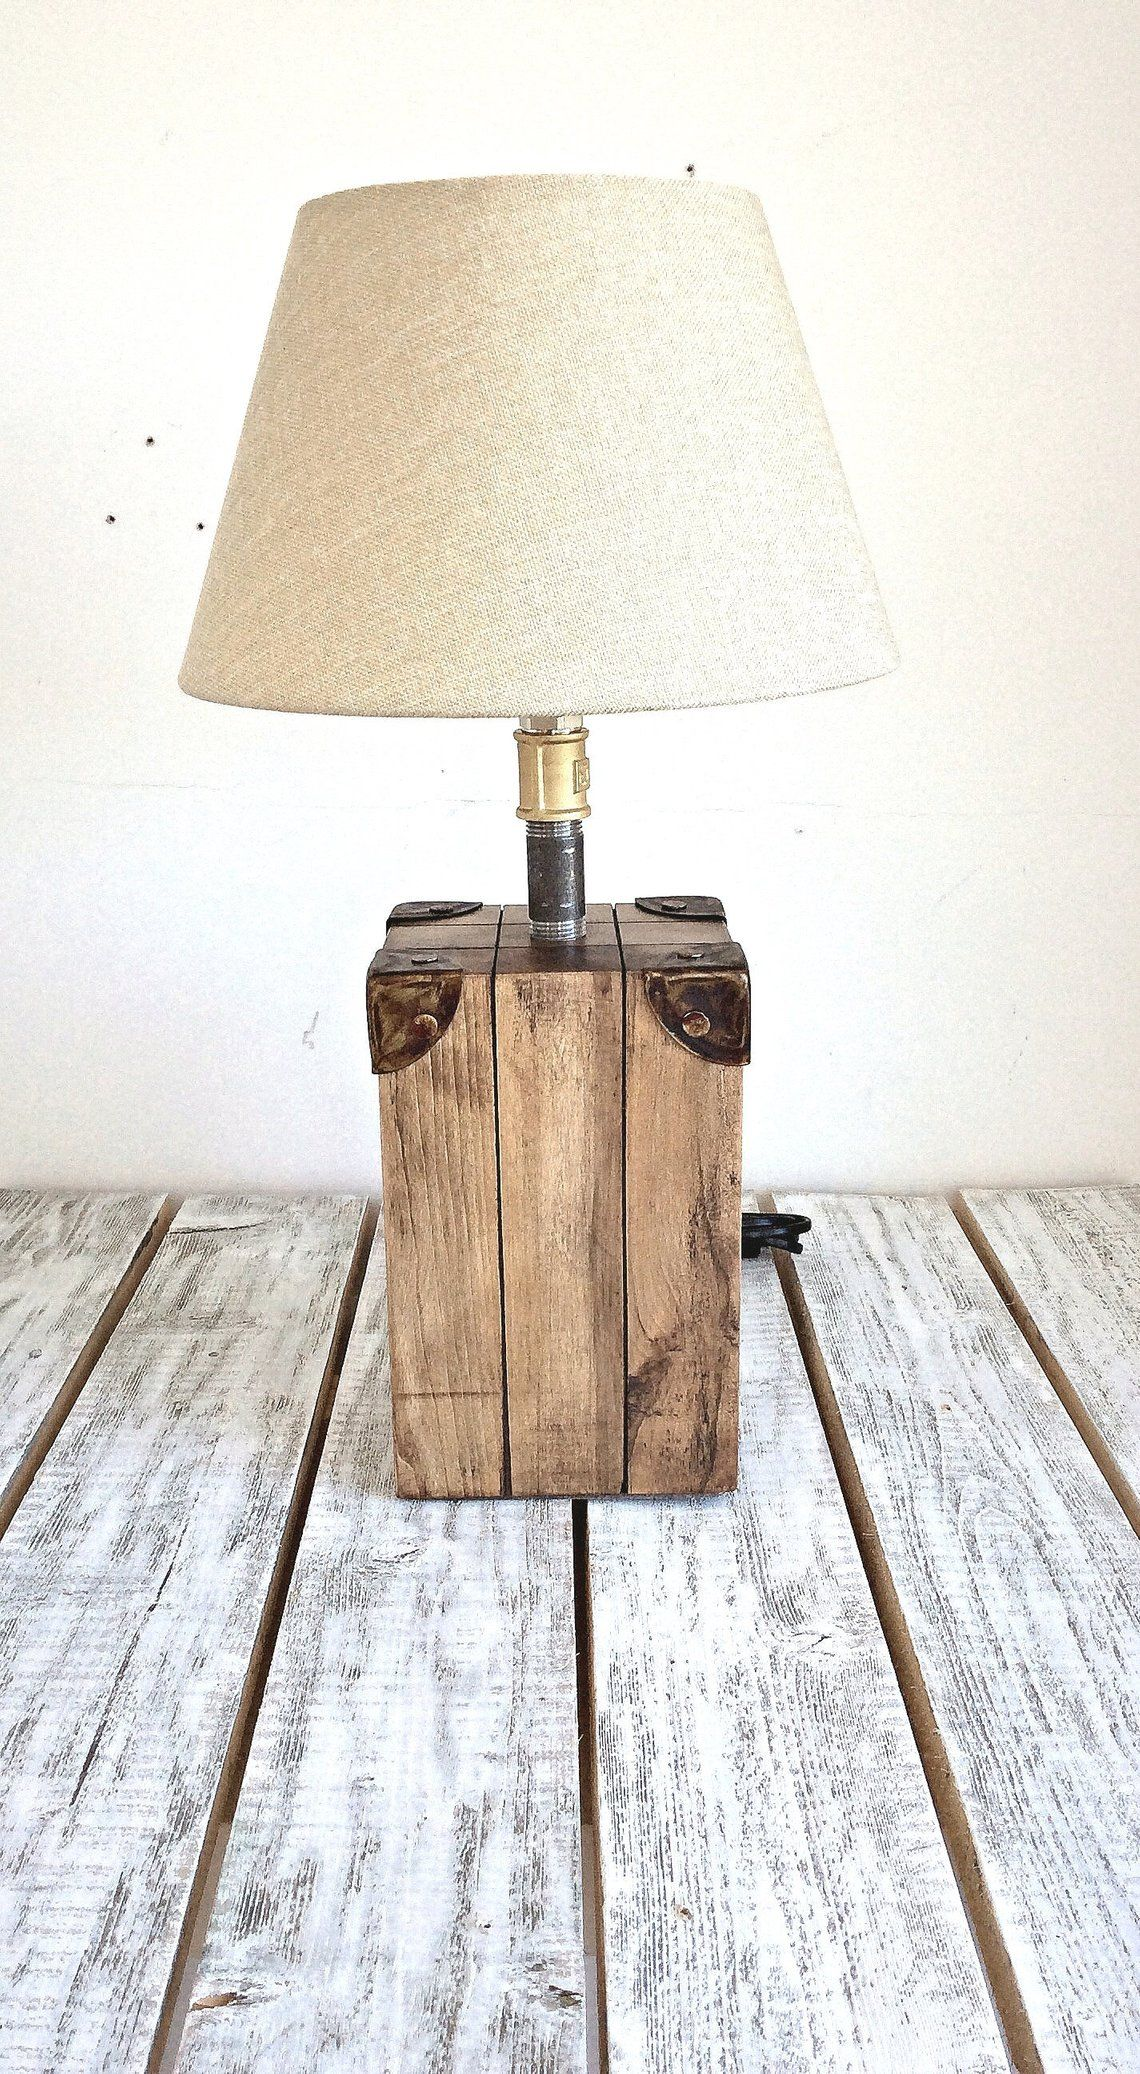 Lampe De Chevet Lampe De Table Lampe Bois Lampe De Bureau Etsy Table Lamp Wood Wood Lamp Base Bedside Lamp